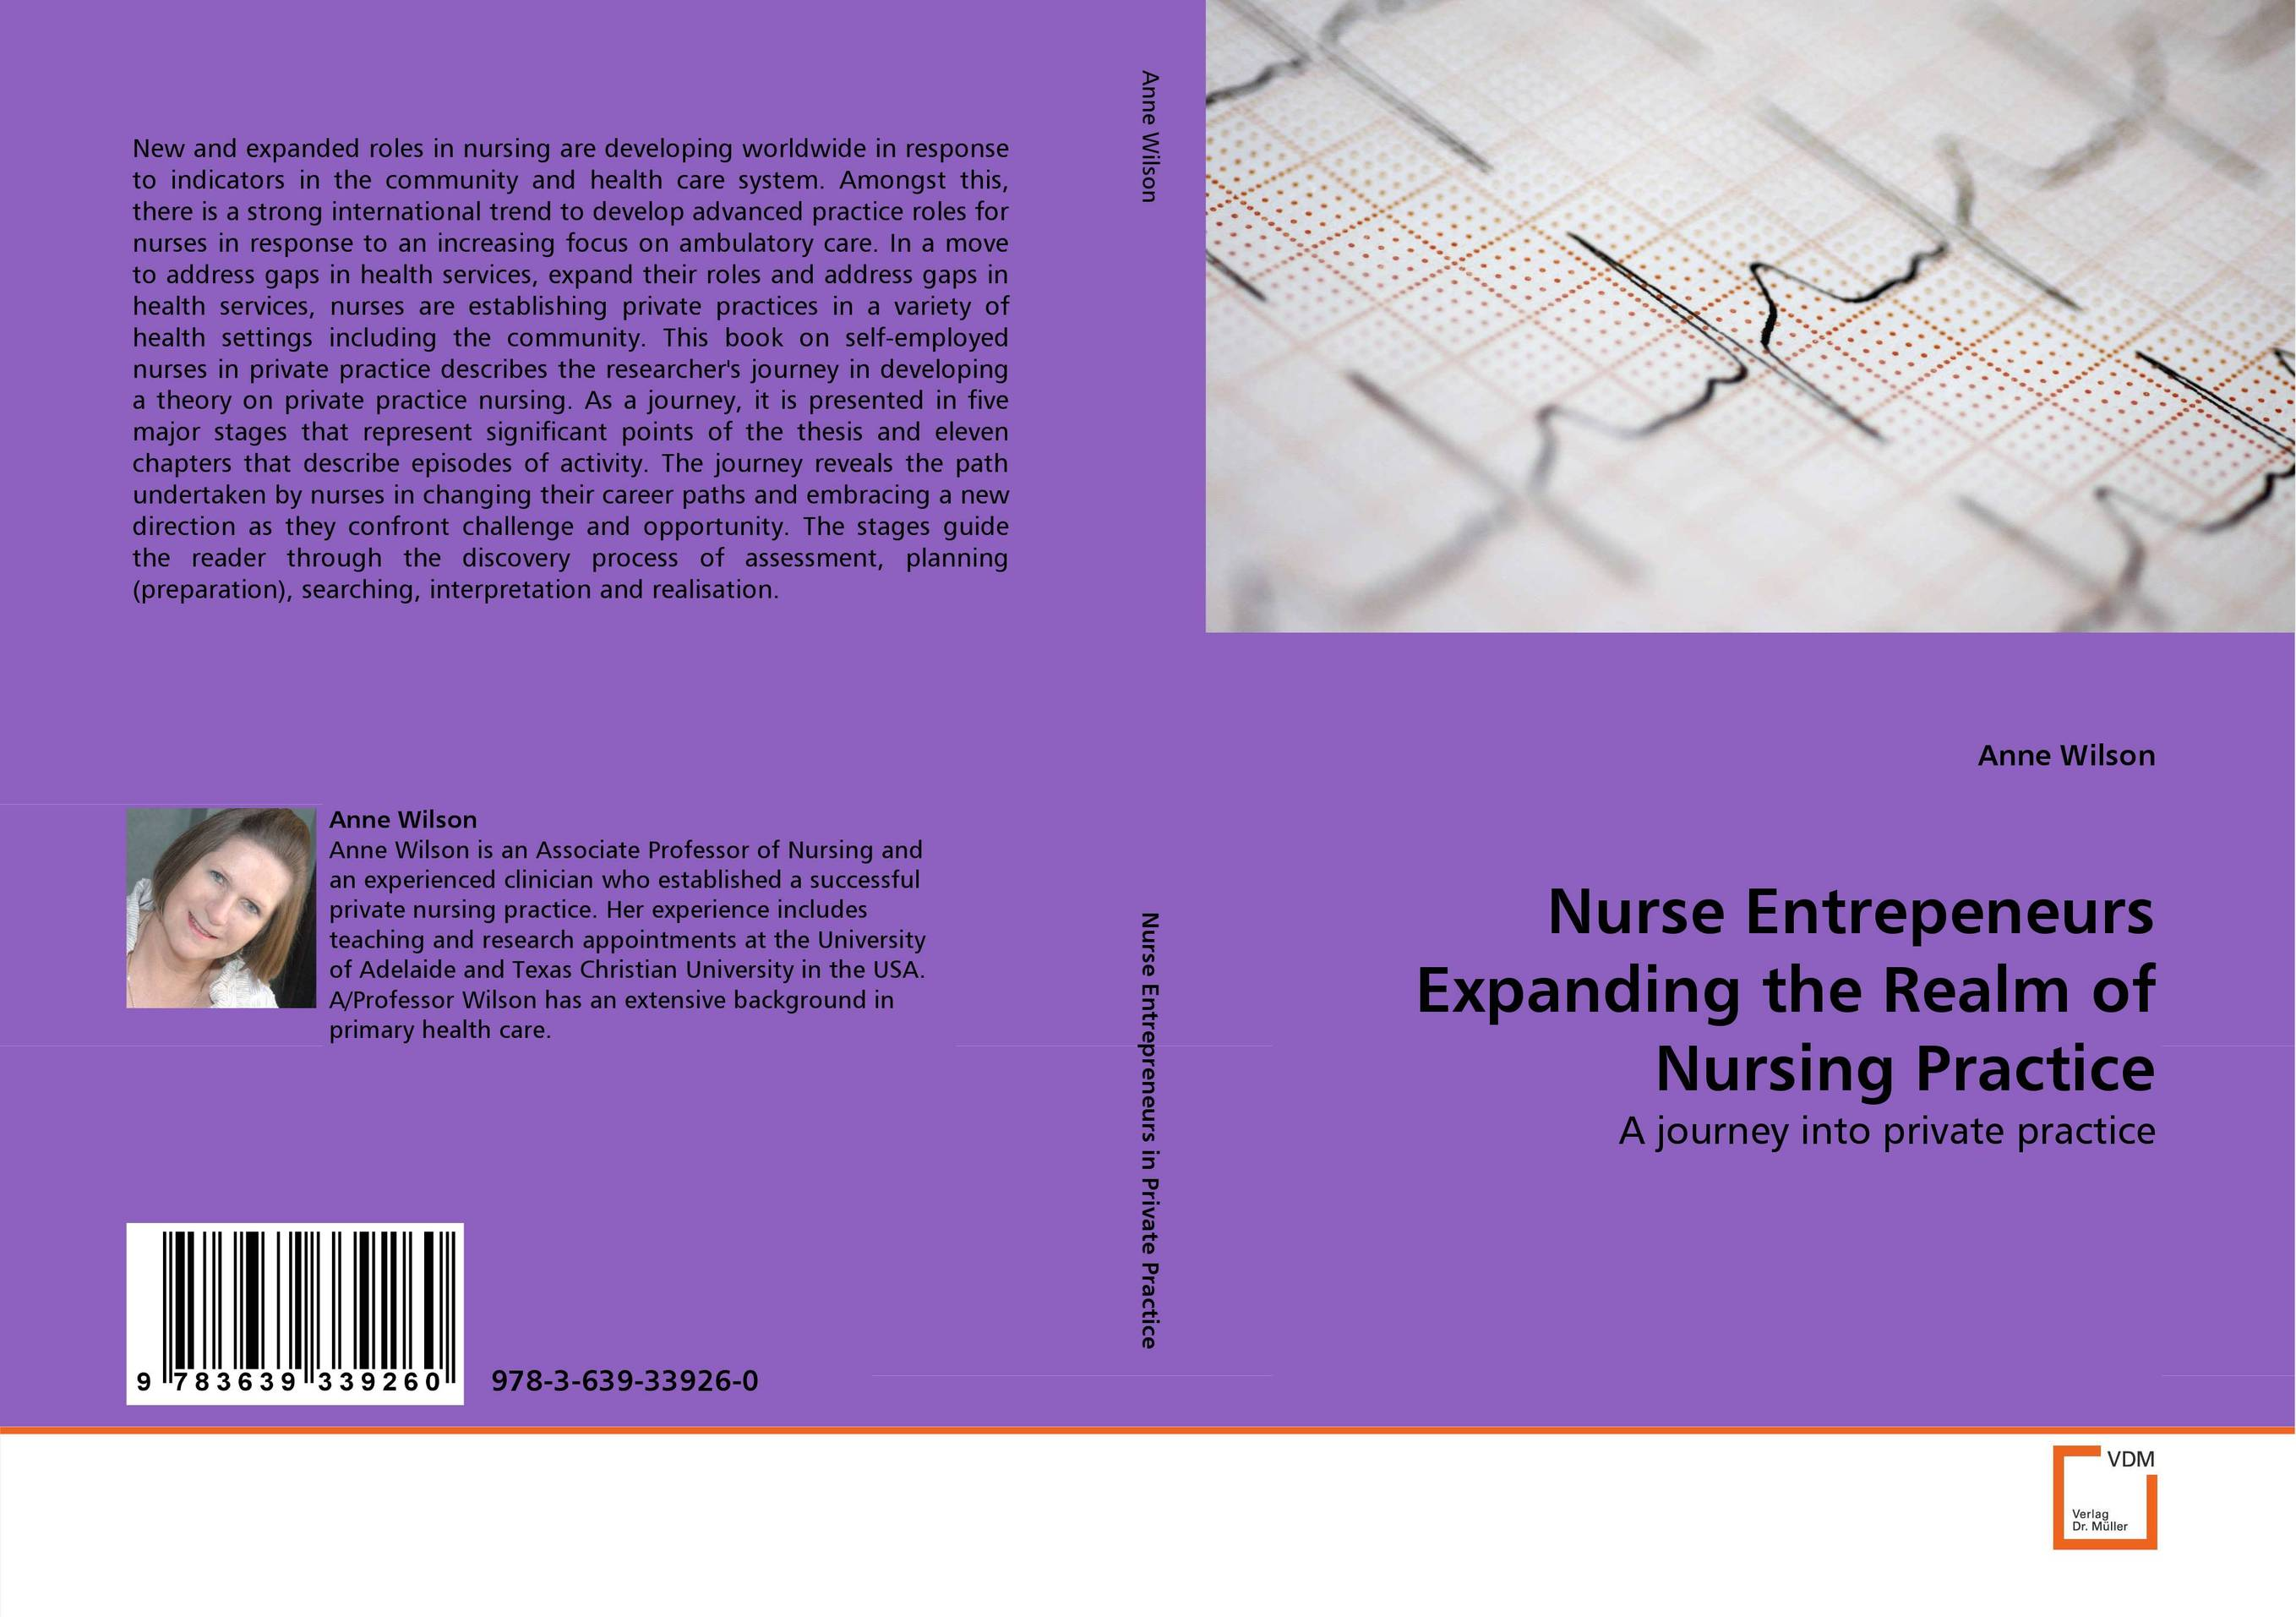 Nurse Entrepeneurs Expanding the Realm of Nursing Practice roles of selenium in farms and in human health